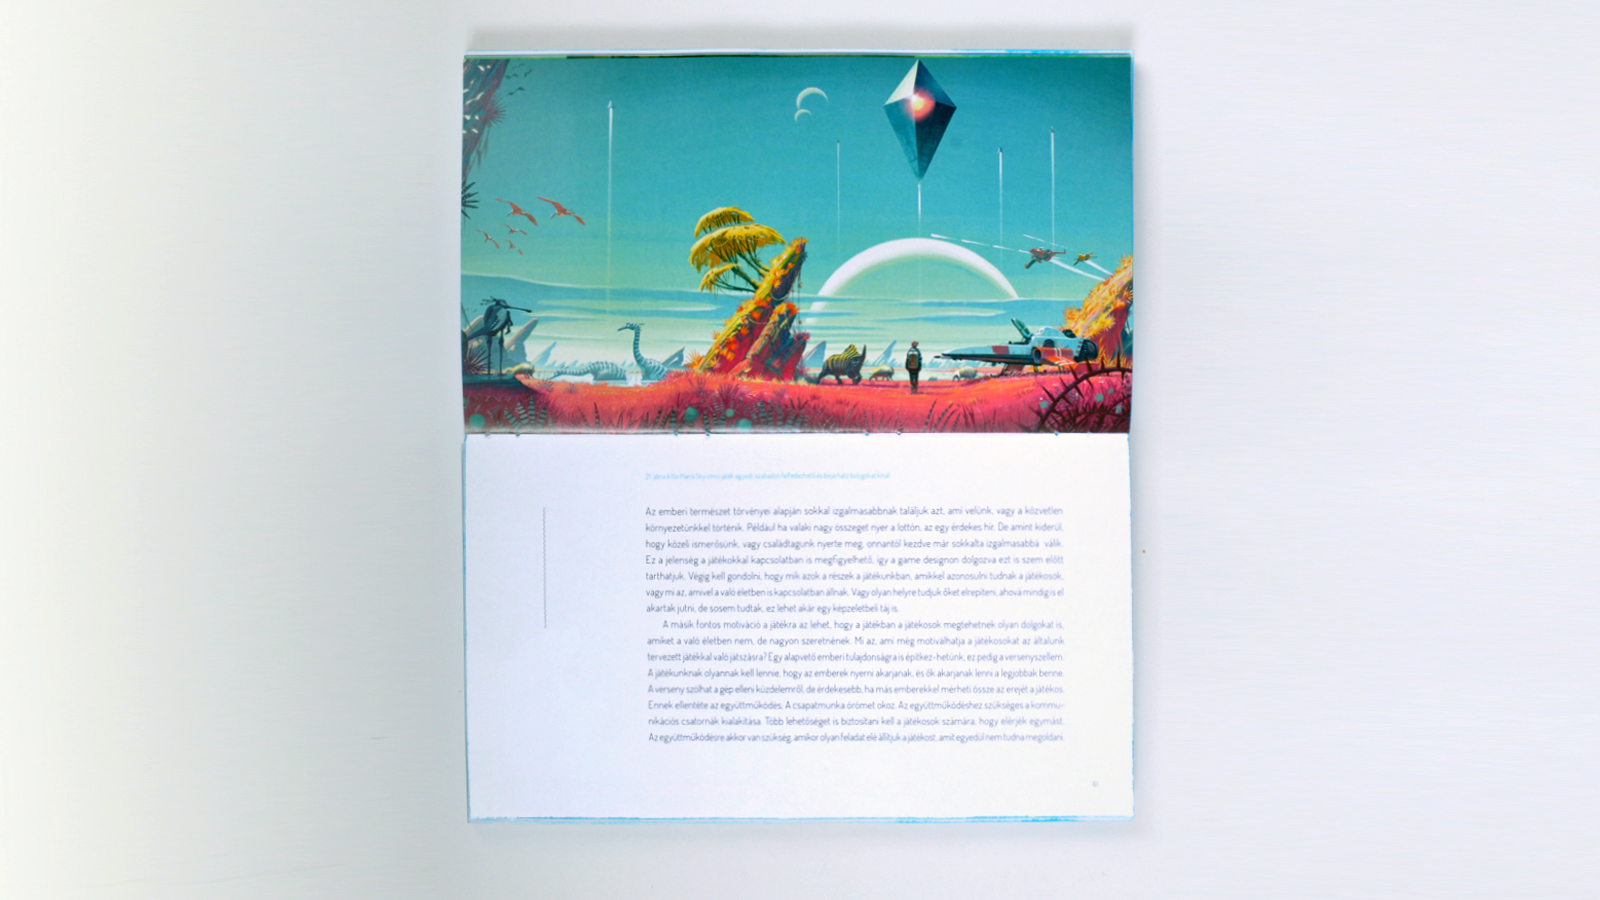 hellodesign-Game design thesis-06.jpg